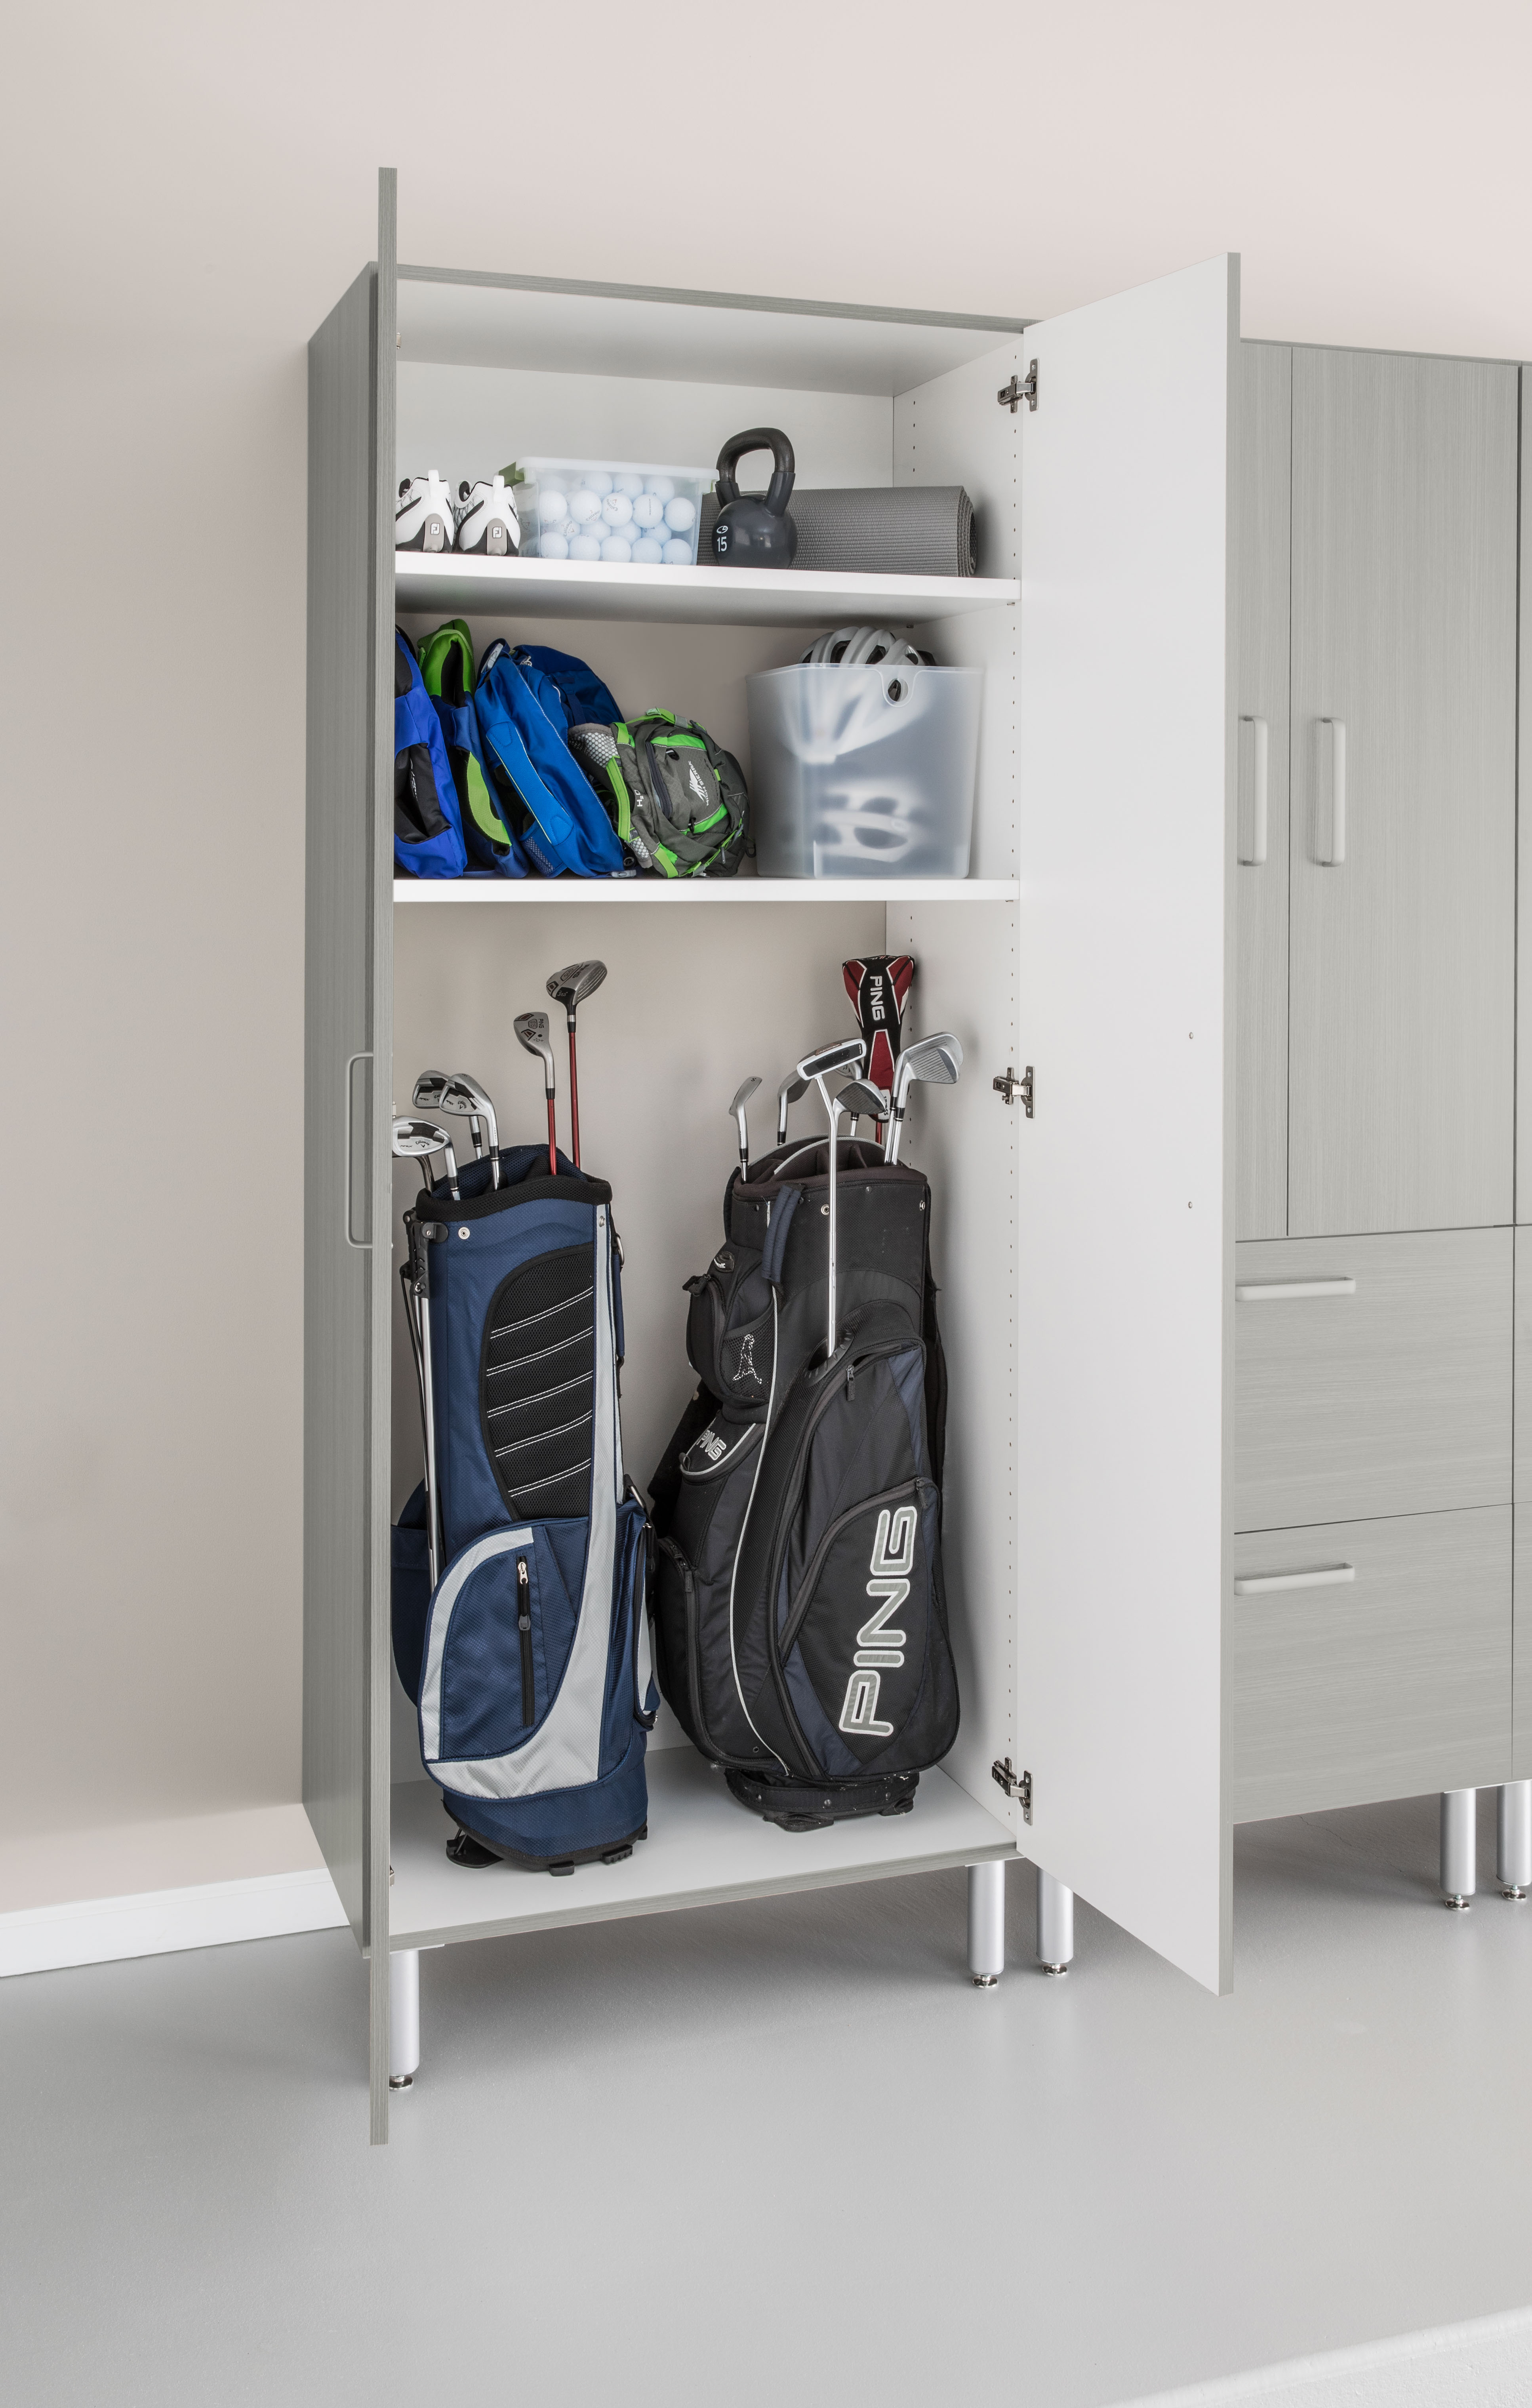 Cleaning and Organizing Your Garage for Spring